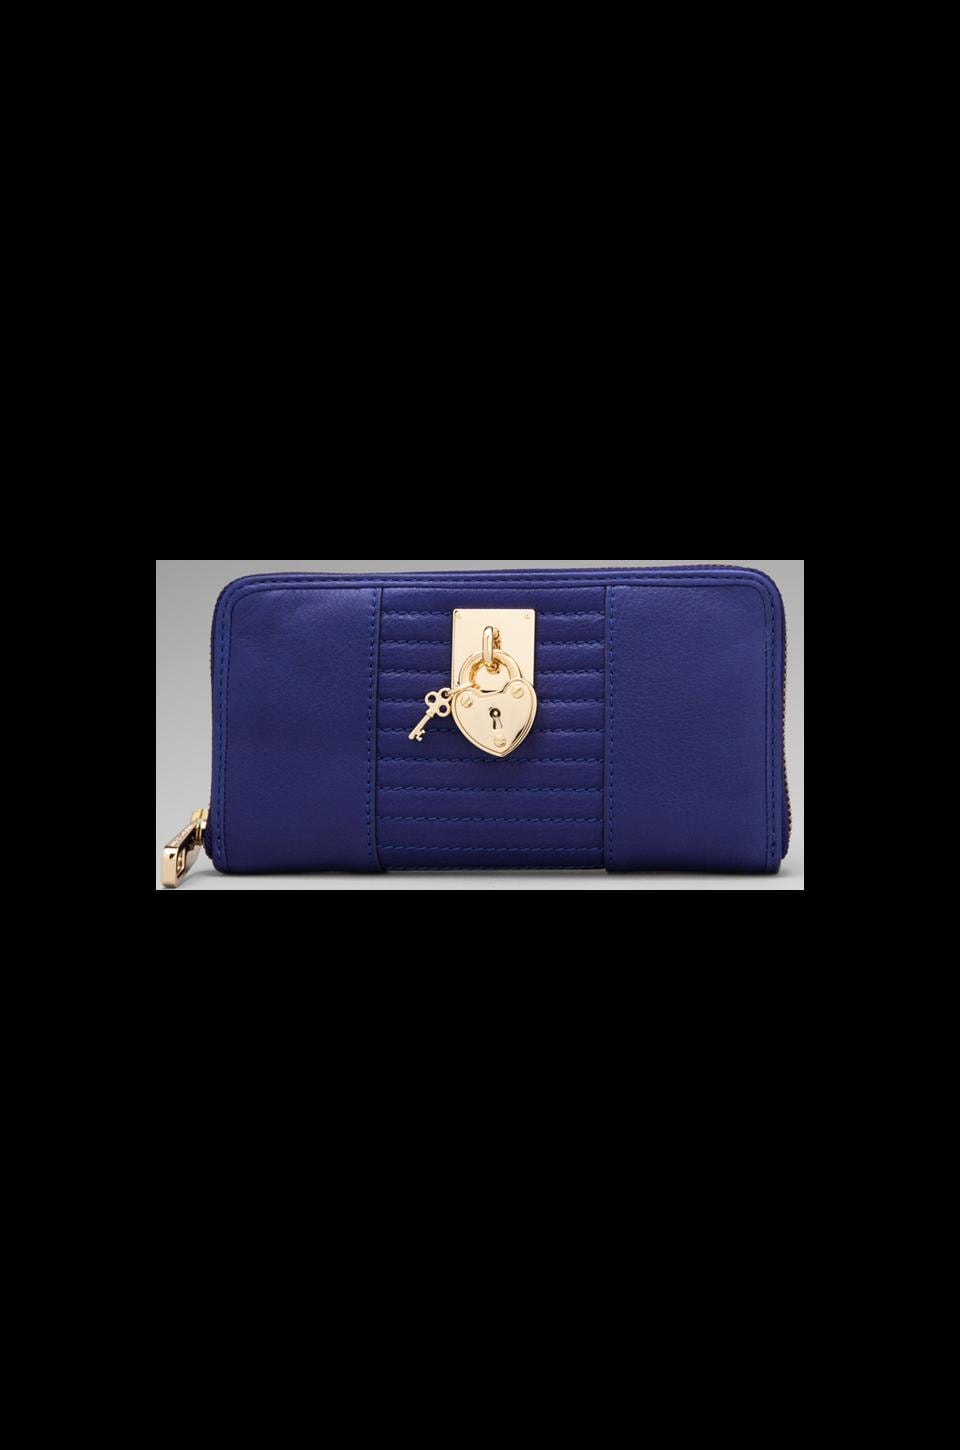 Juicy Couture Signature Leather Zip Wallet in Avery Blue